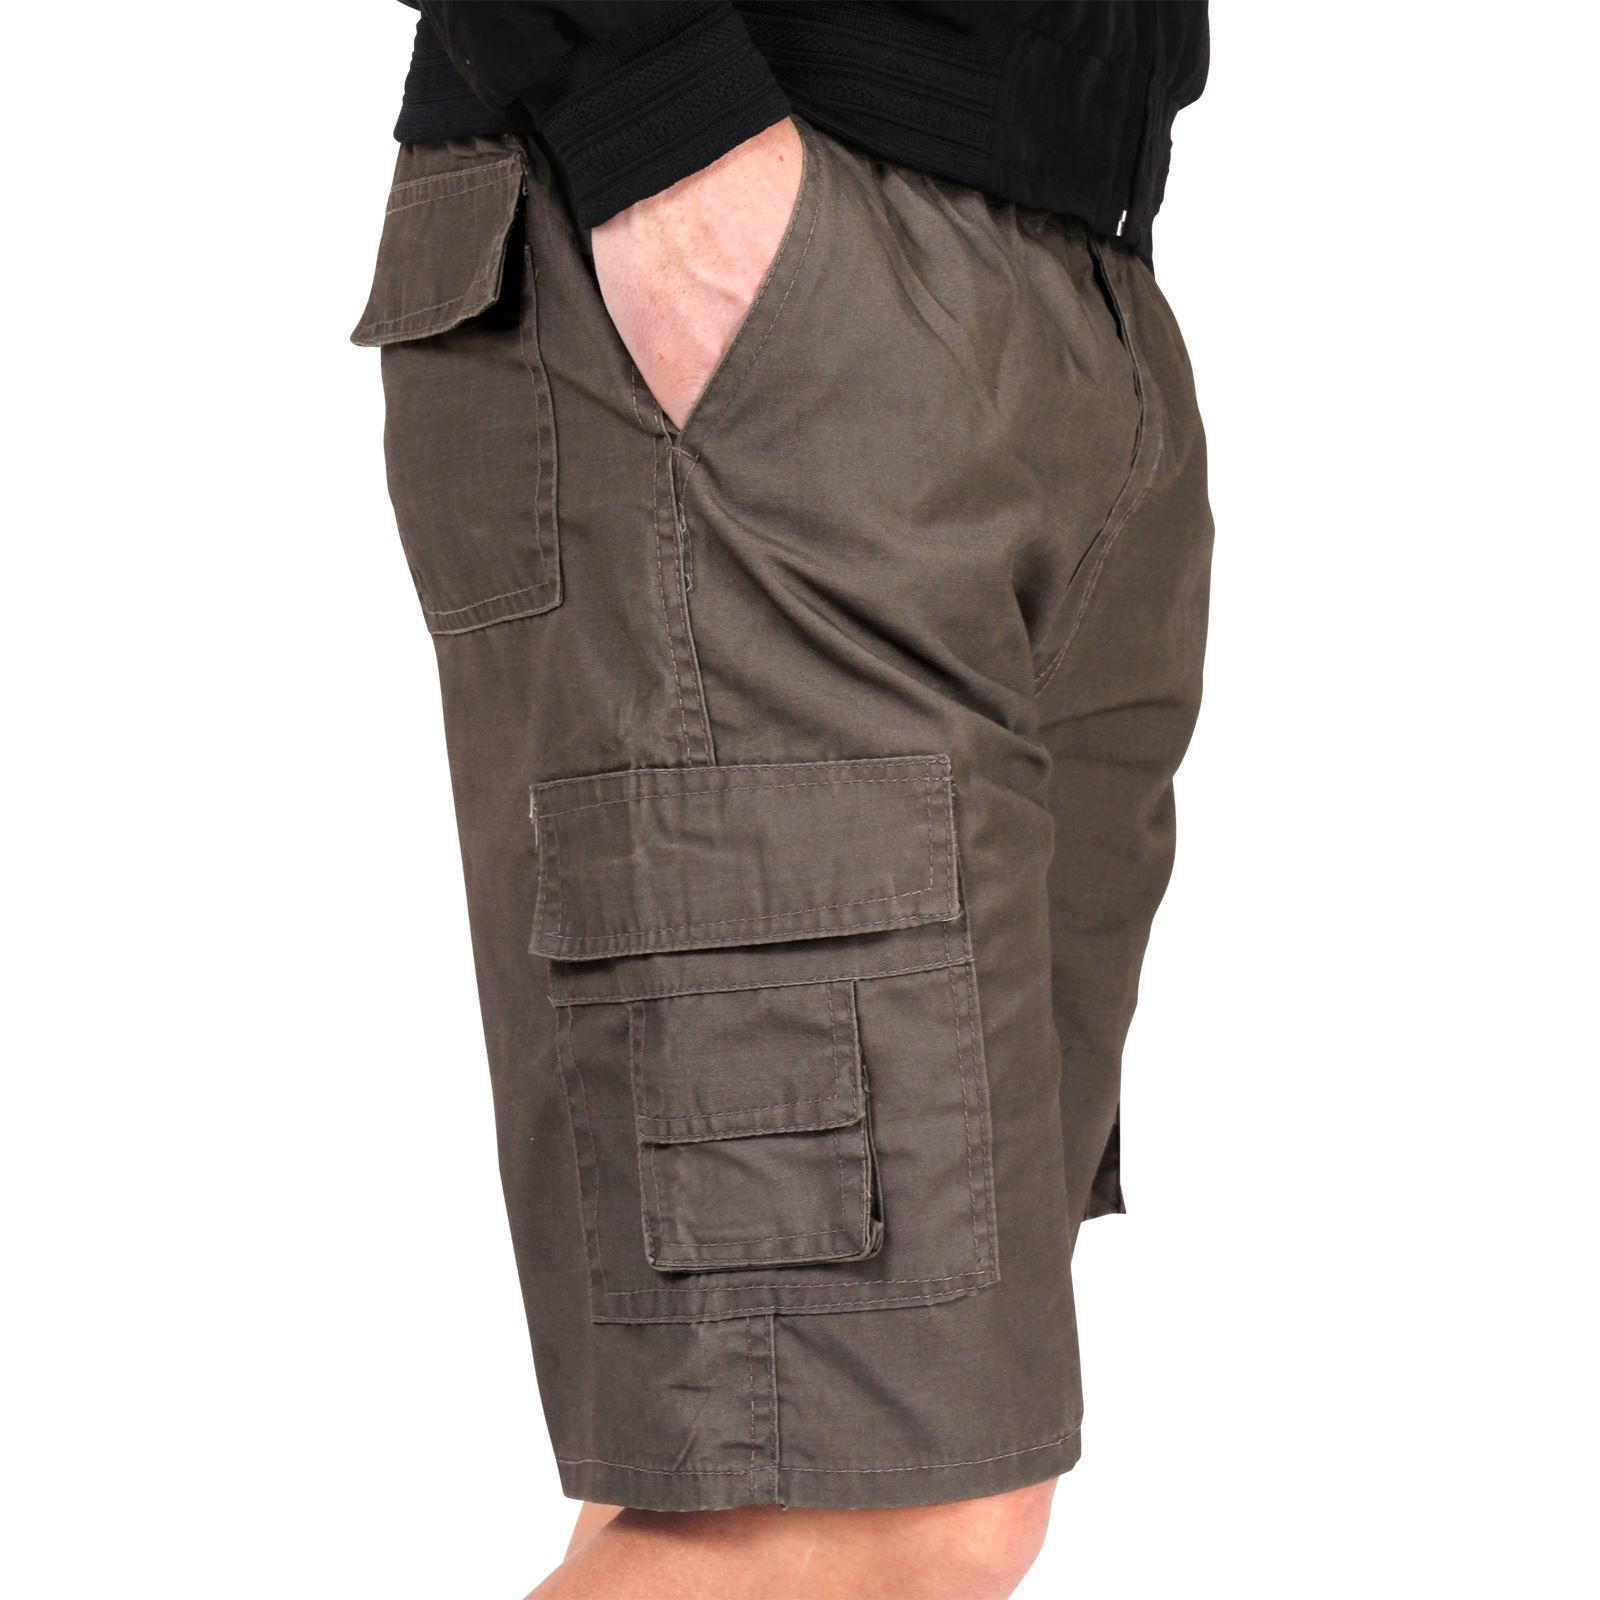 herren einfarbige cargo shorts kurze hose baumwolle regular sommer freizeit ebay. Black Bedroom Furniture Sets. Home Design Ideas